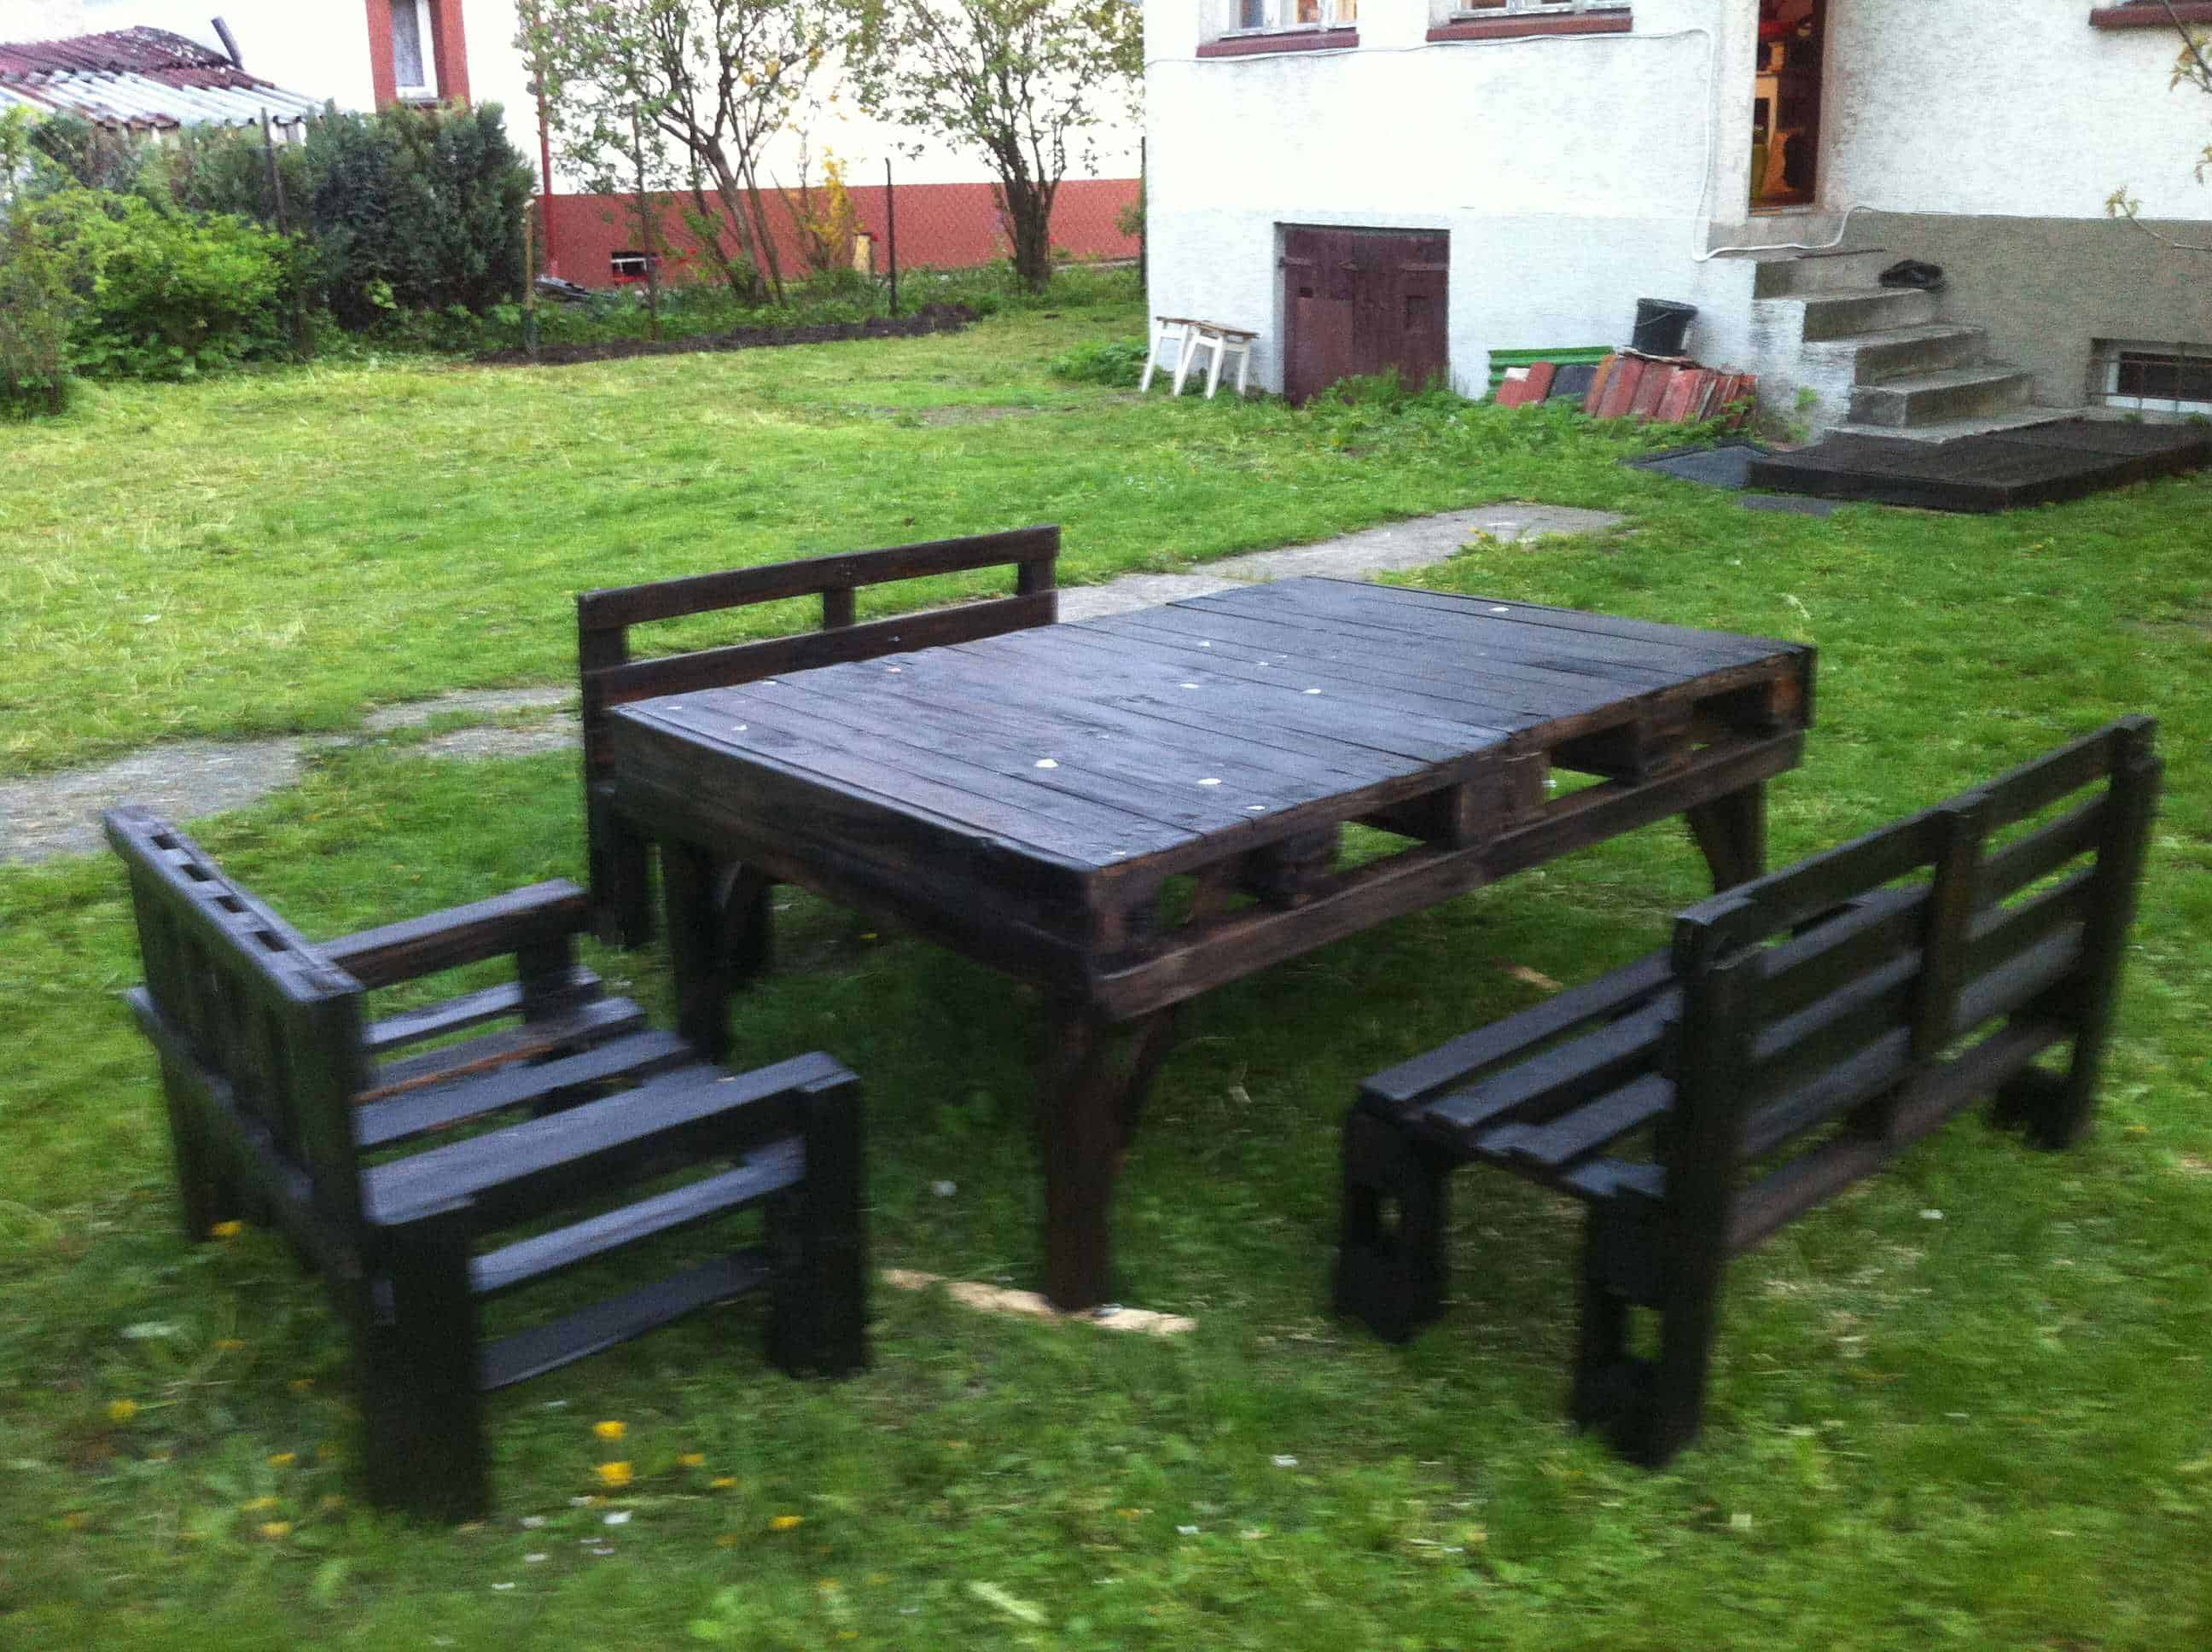 Garden Furniture Pallet pallet garden furniture • pallet ideas • 1001 pallets